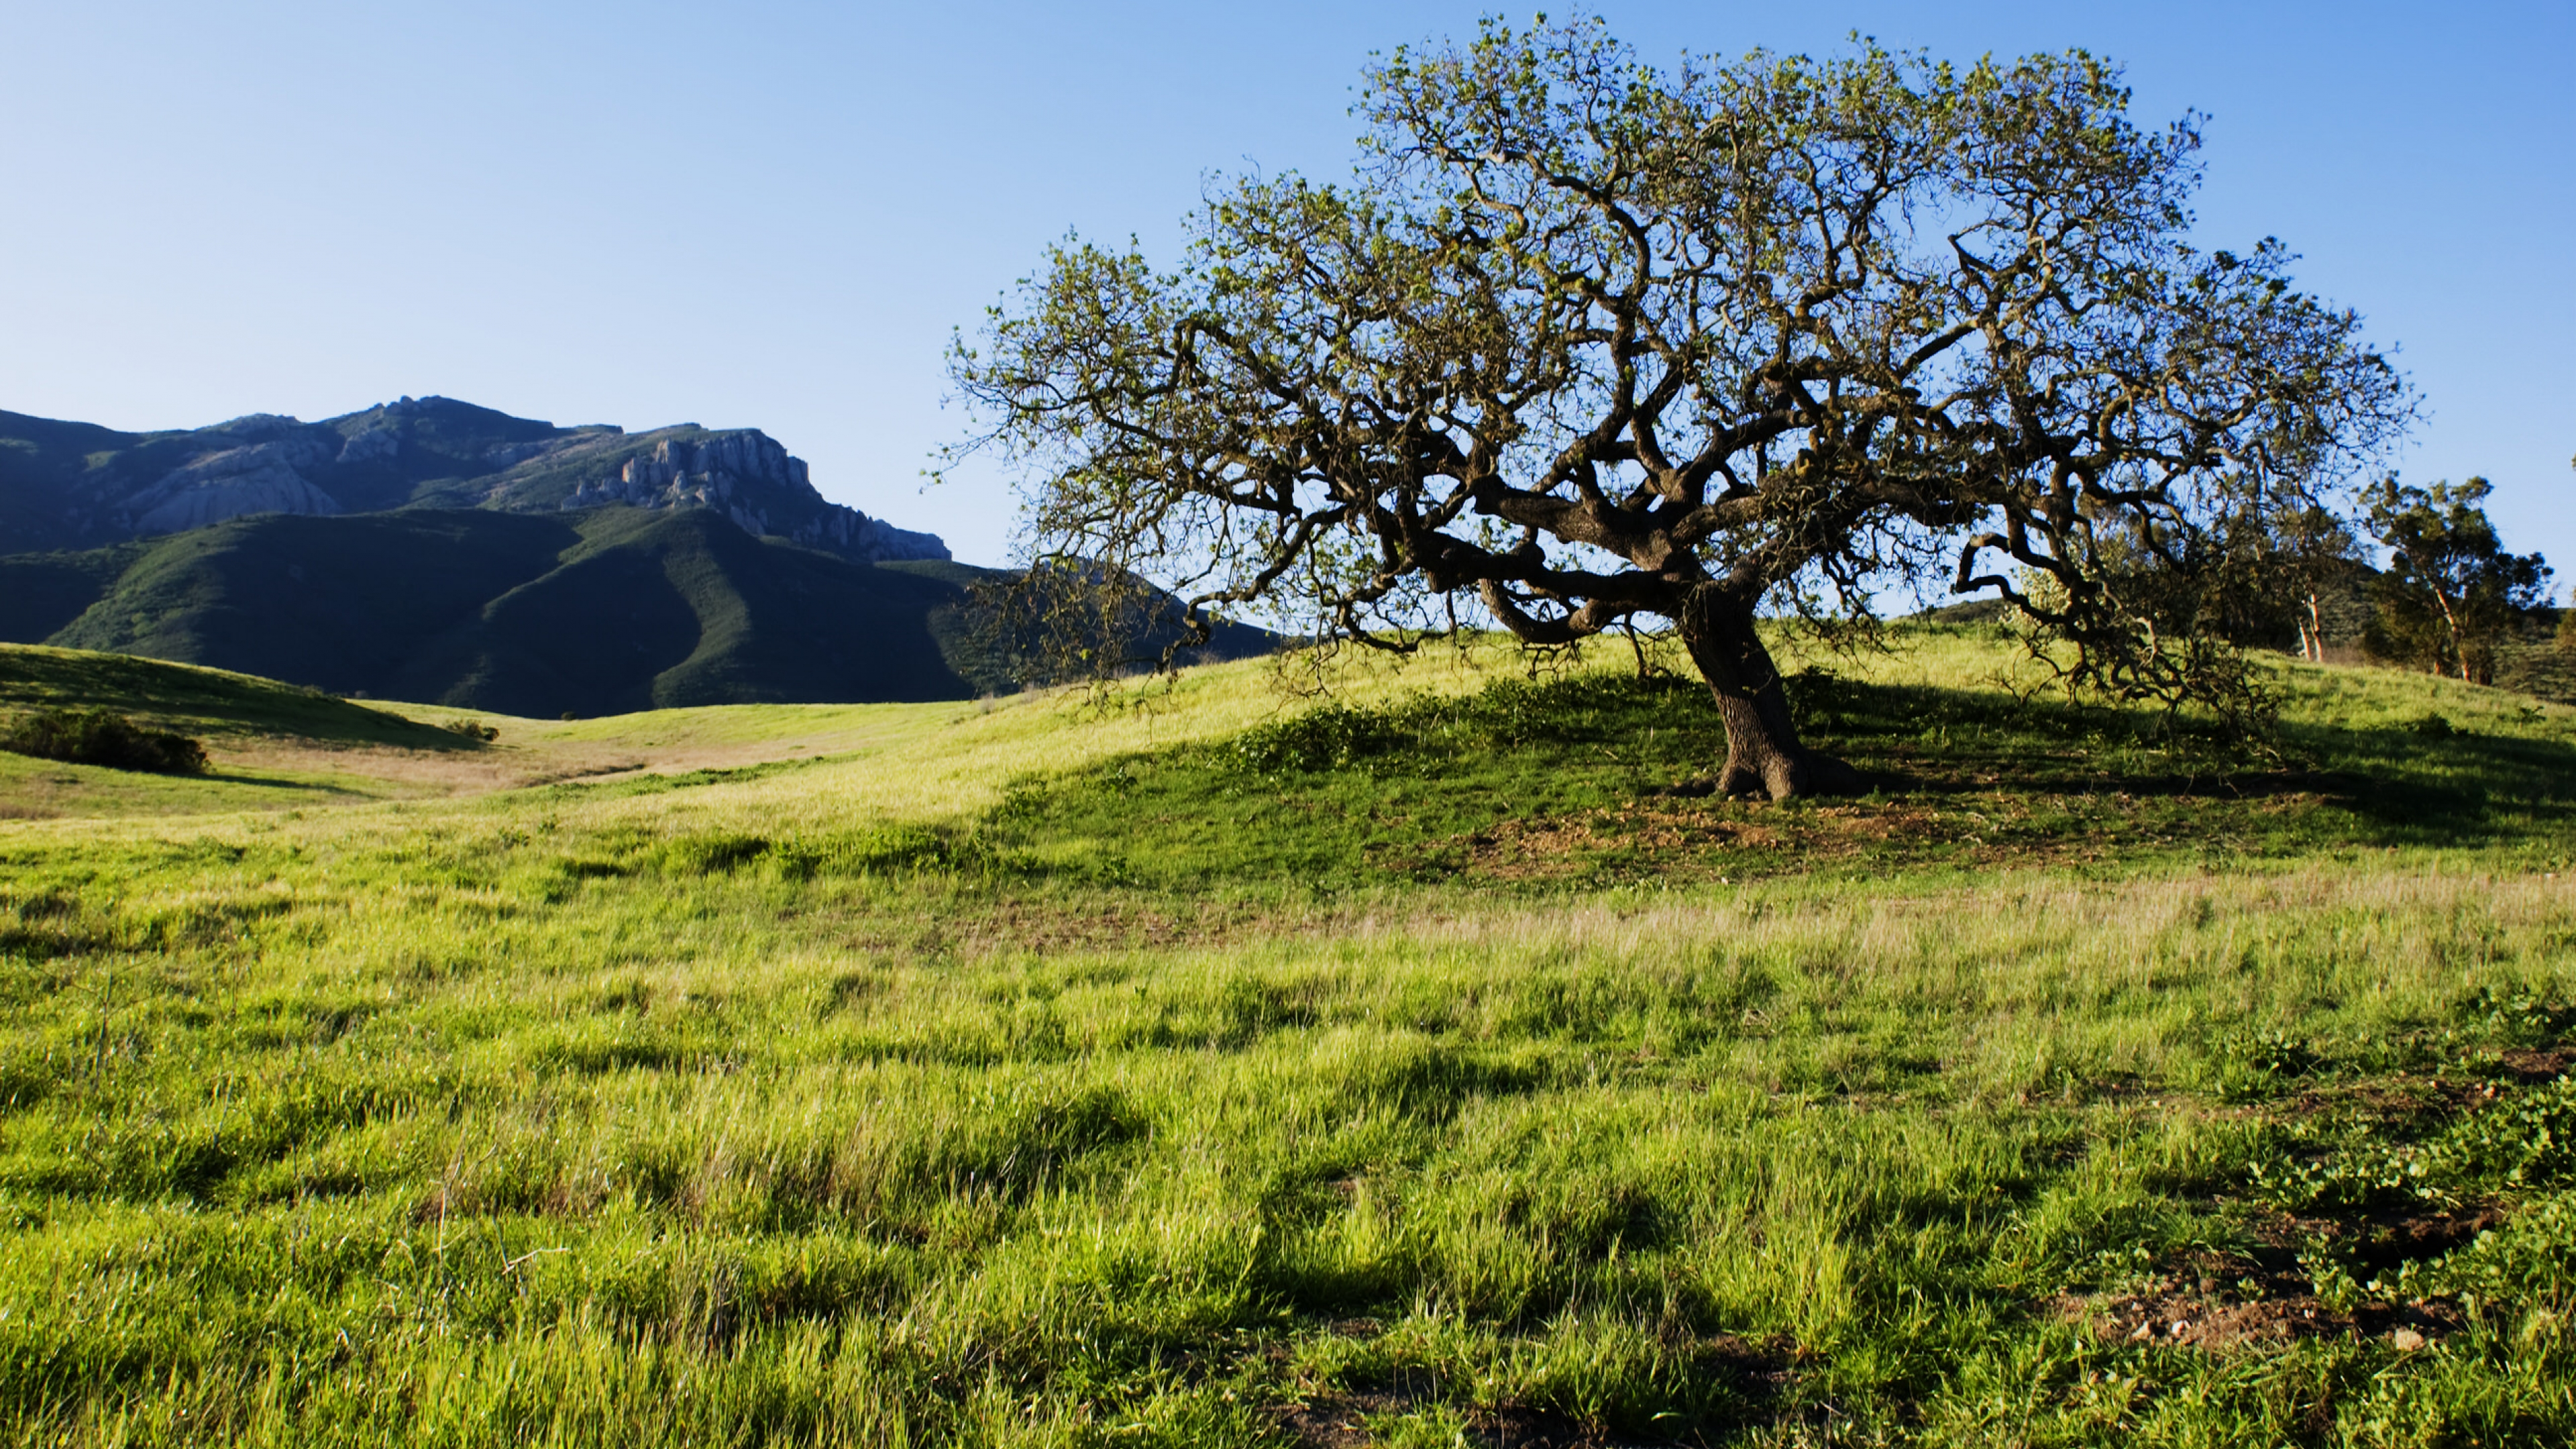 Green tree in a grassy field in the Santa Monica Mountains National Recreation Area